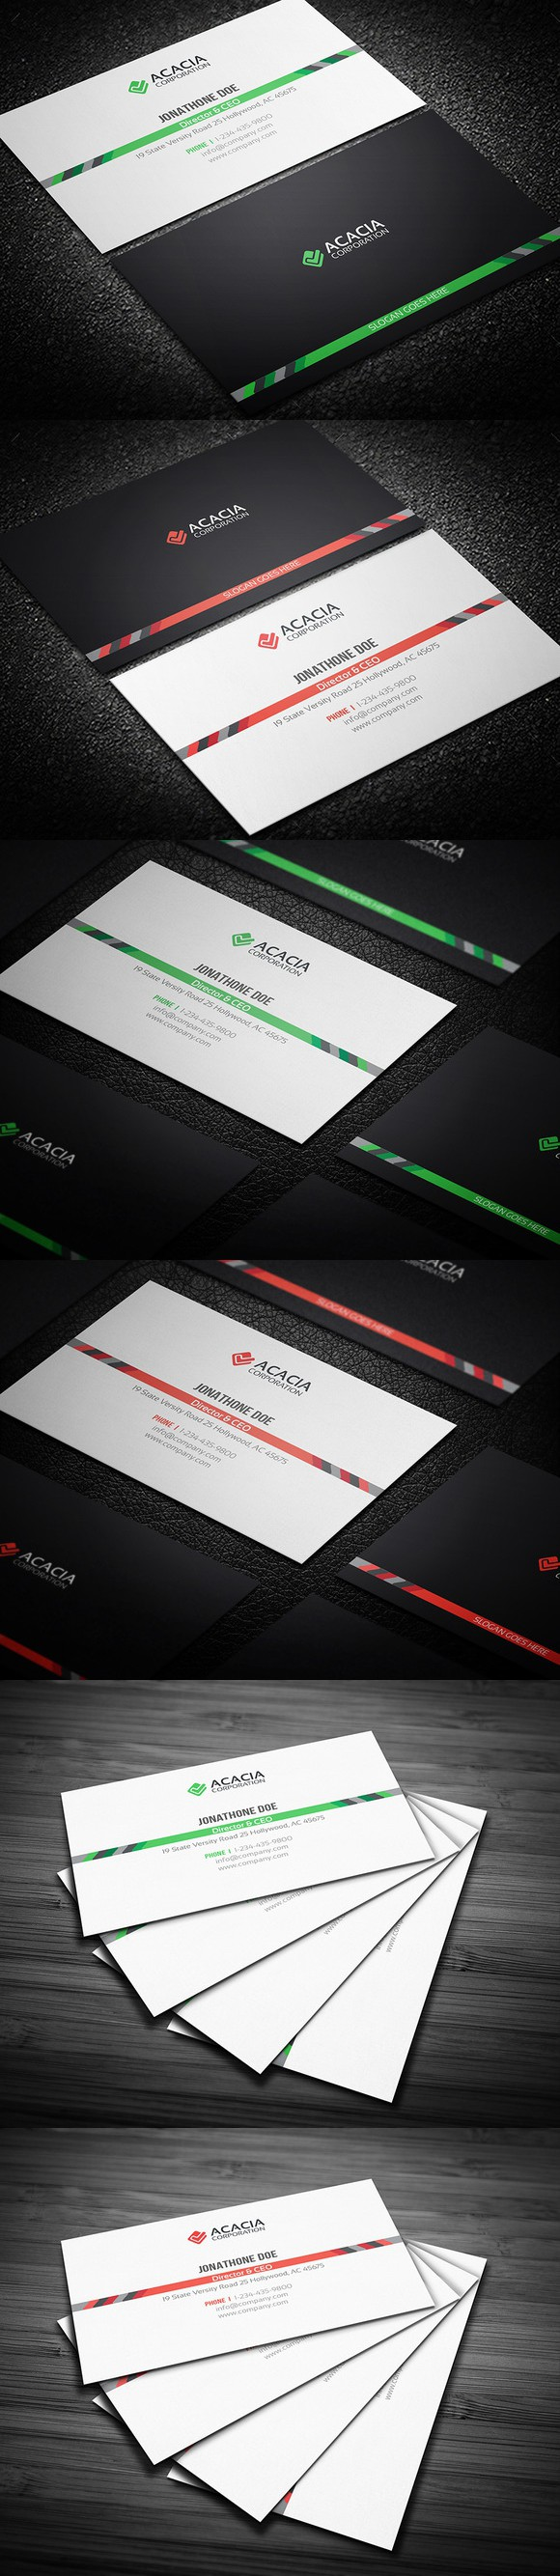 Middle line business card business cards card templates and business middle line business card reheart Choice Image